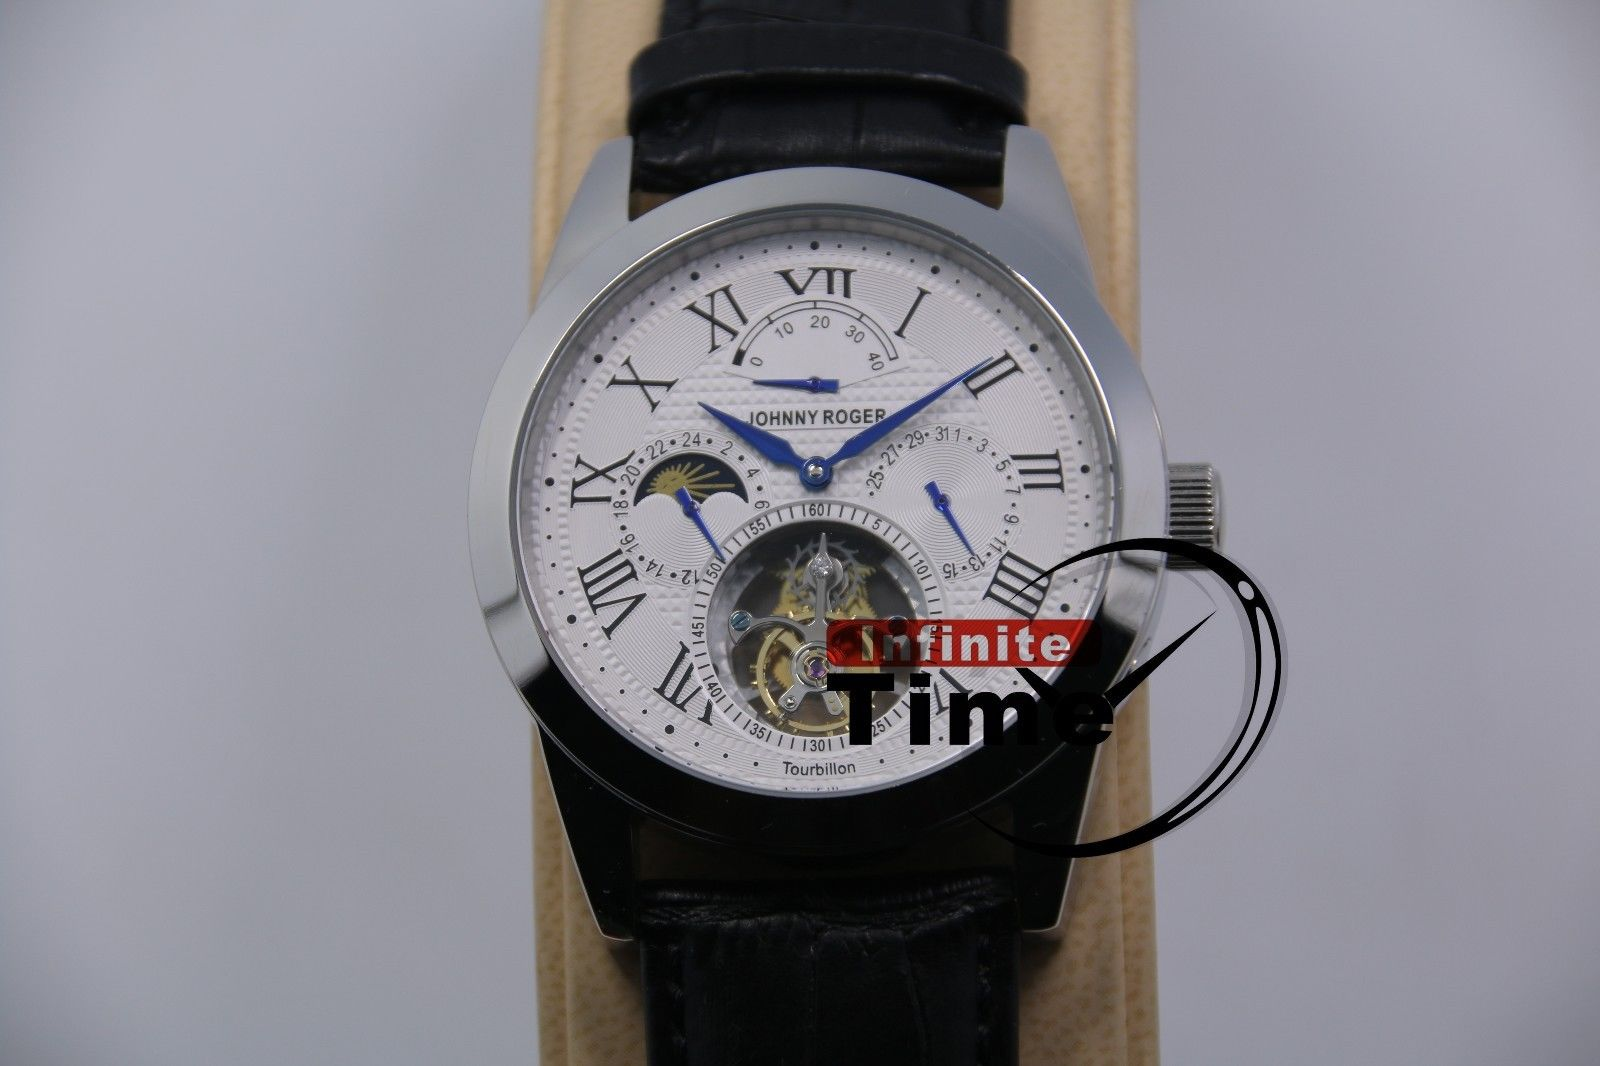 Genuine Seagull Tourbillon OEM Man Handwind Wristwatch JOHNNYROGER Date Power ReserveGenuine Seagull Tourbillon OEM Man Handwind Wristwatch JOHNNYROGER Date Power Reserve